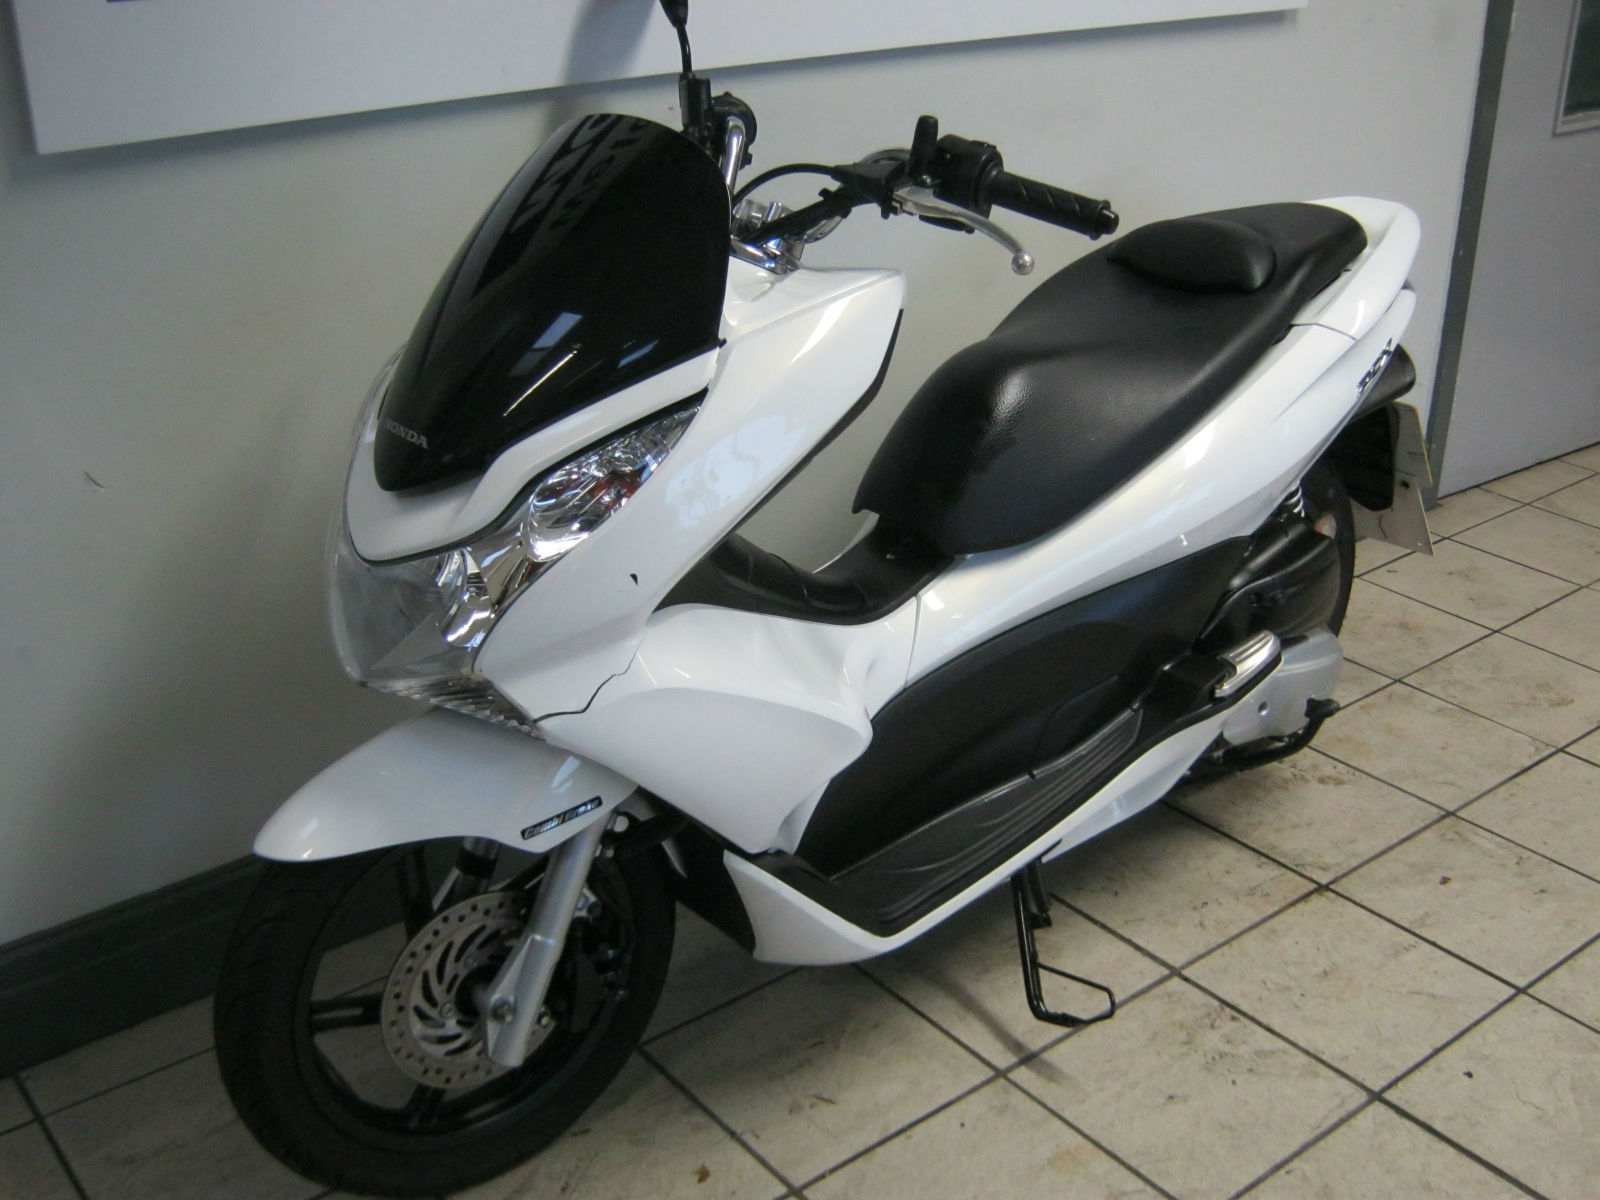 honda pcx ww 125 ex2 a automatic scooter light damage low miles 2012. Black Bedroom Furniture Sets. Home Design Ideas